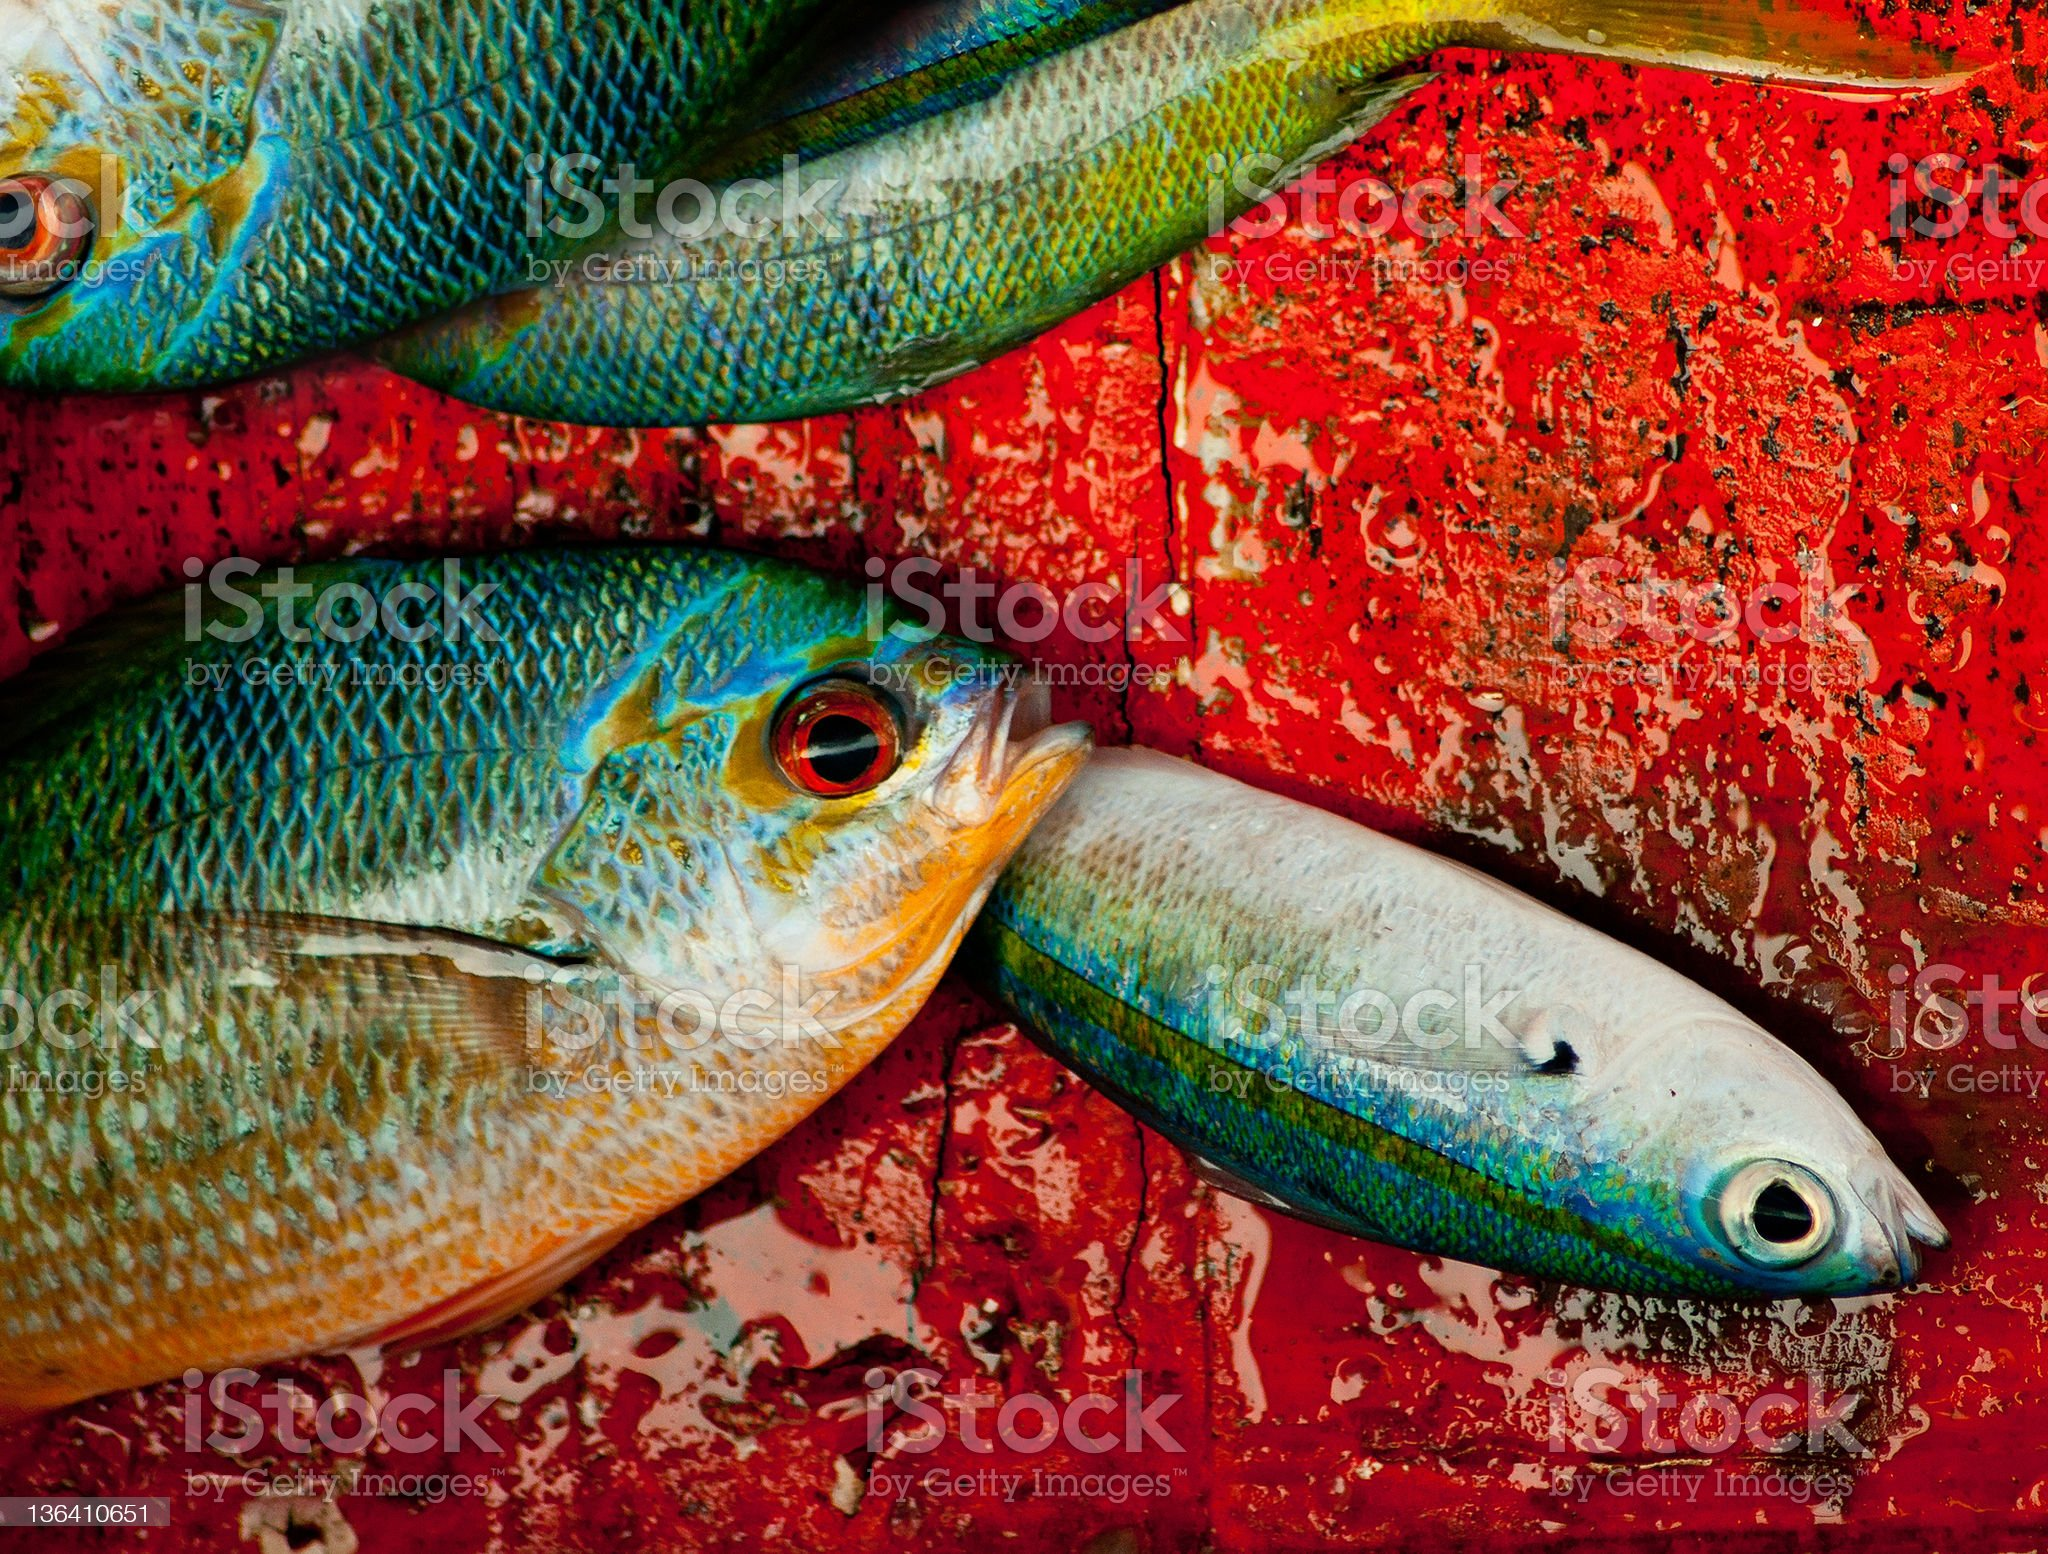 caught fish on deck royalty-free stock photo